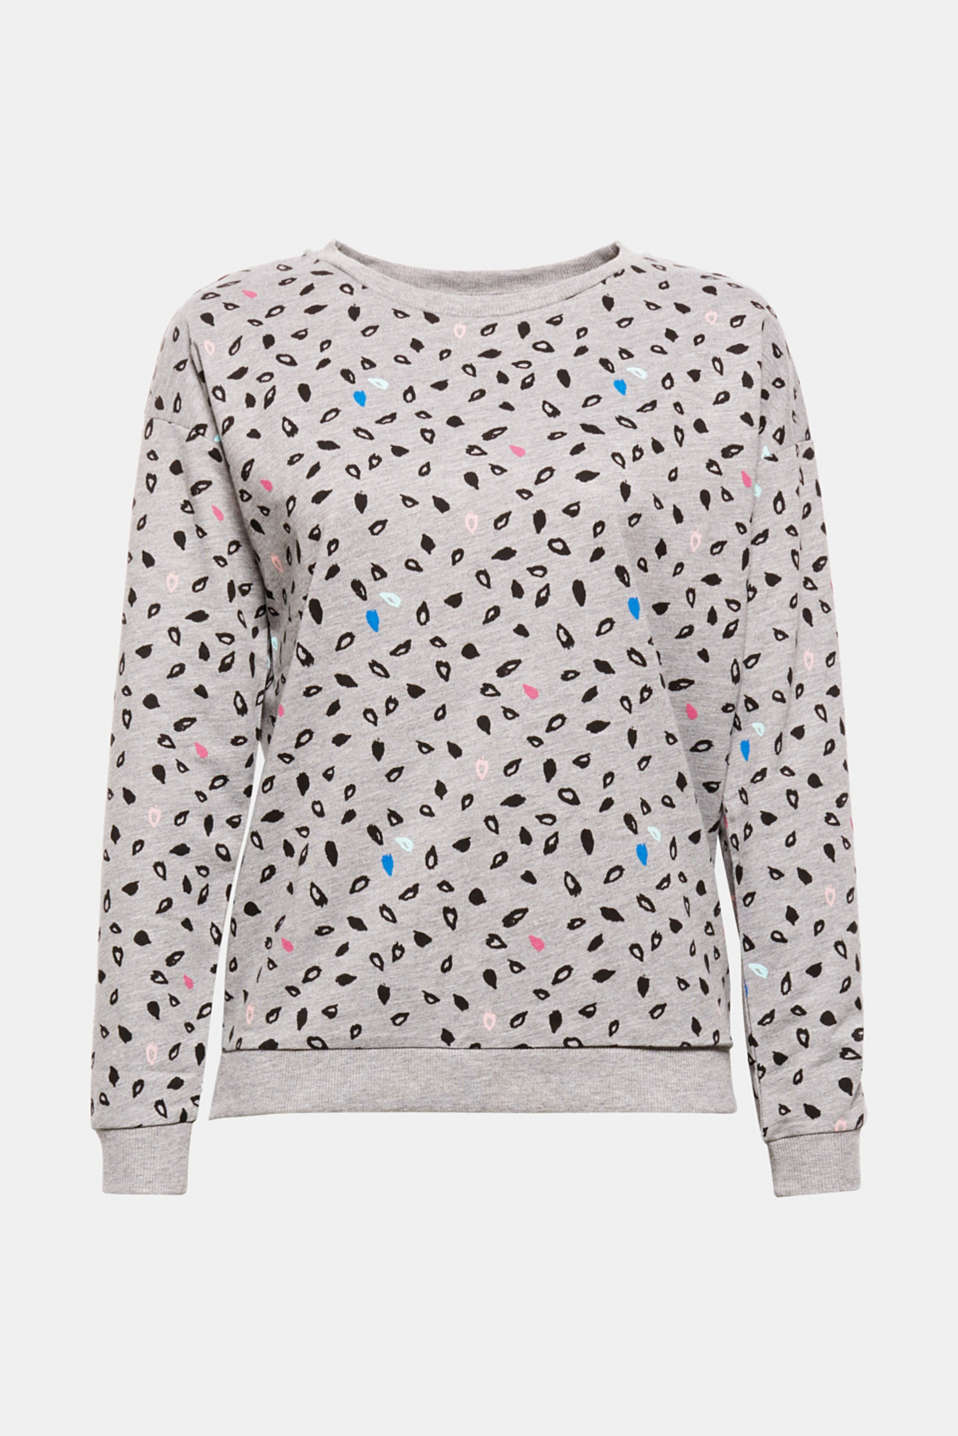 New animal print meets melange jersey - and becomes this loose sweatshirt with an 80s vibe!